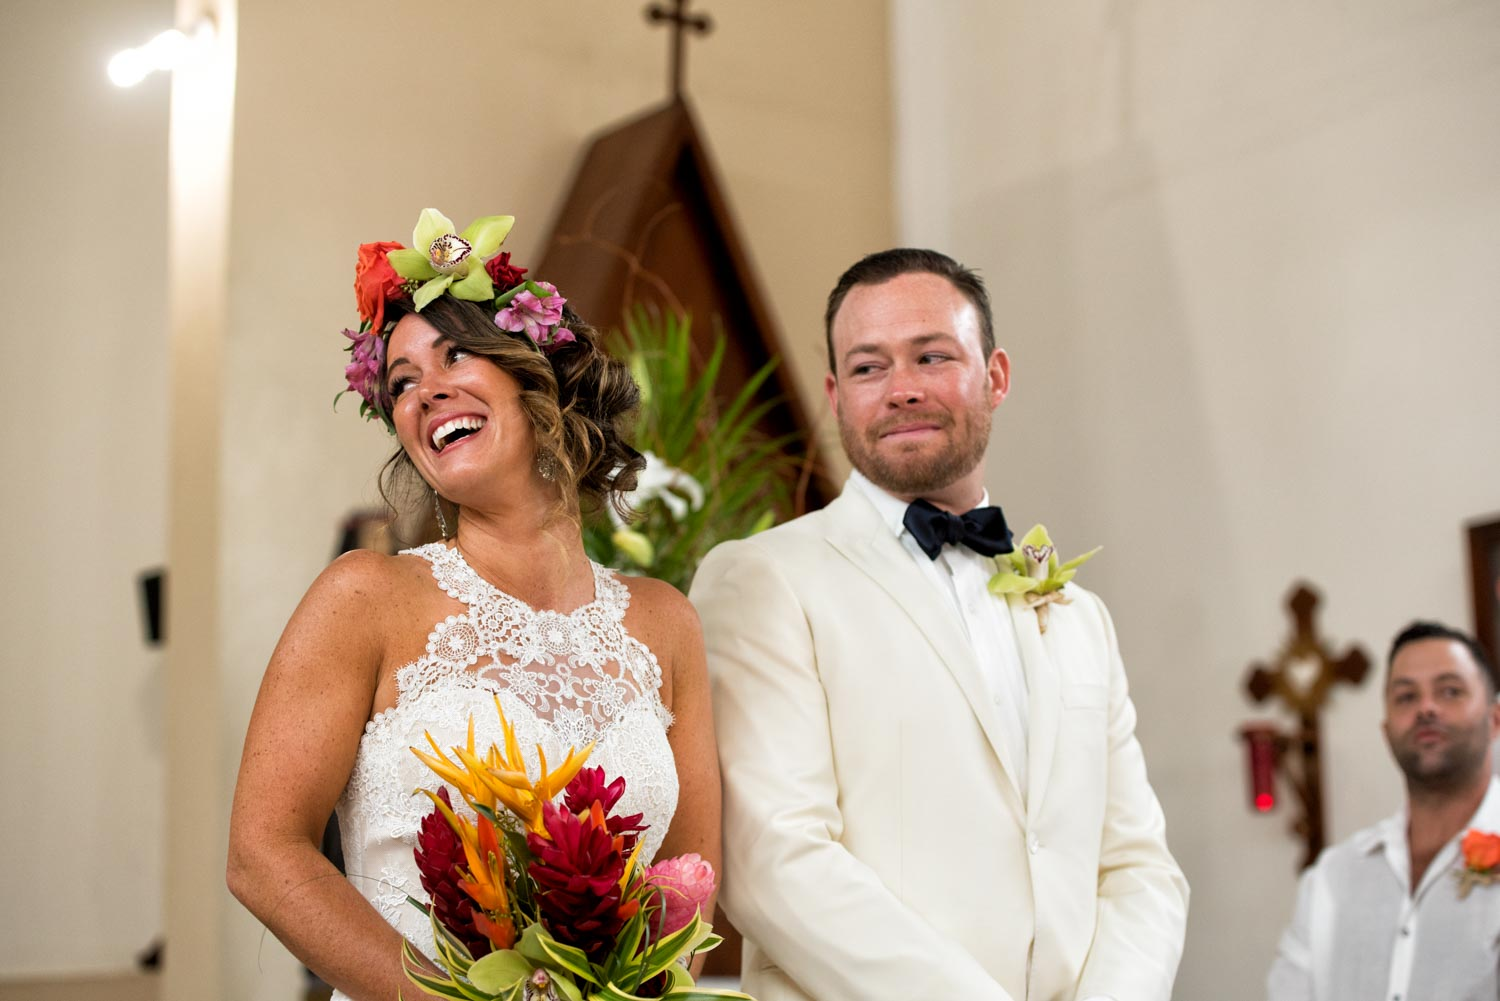 Bride smiling standing next to her fiance holding a bouquet of tropical flowers inside the church.